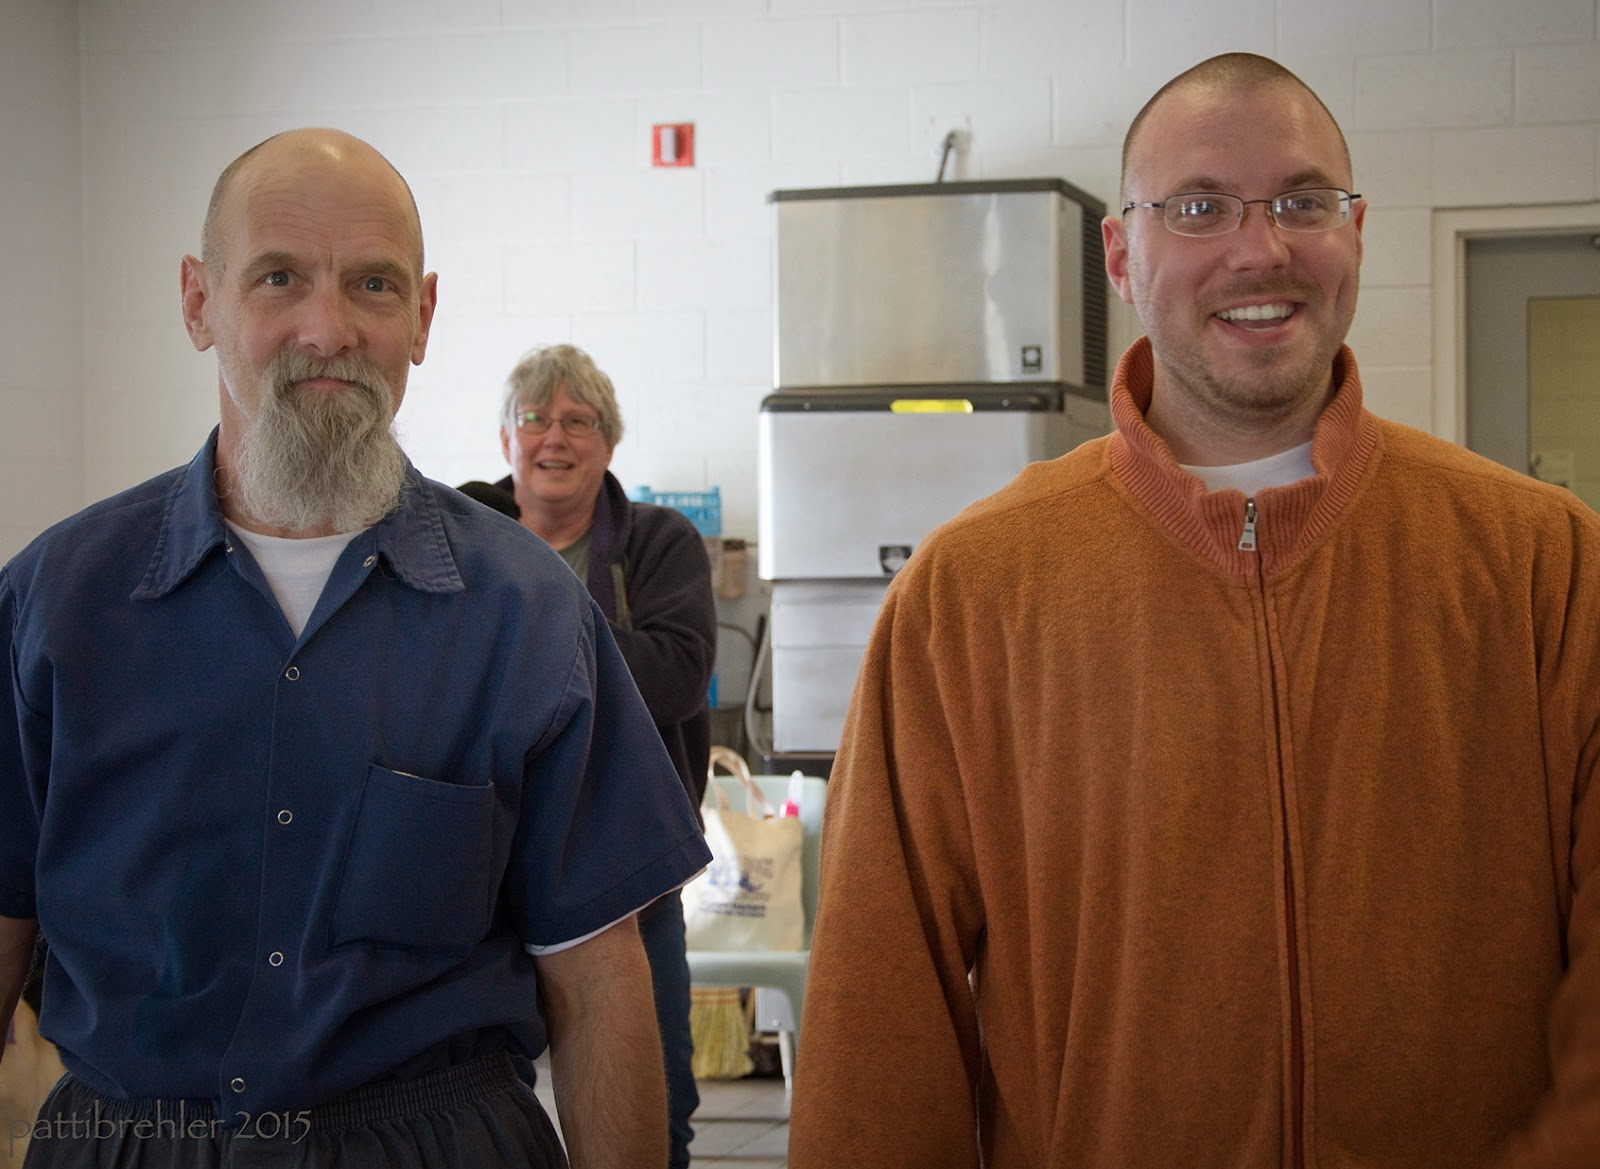 Two men are facing the camera, a woman is approaching from behind them just over the shoulder of the man on the left. The man on the left is wearing a blue short-sleeved shirt and is bald with a gray beard. The man on the right is wearing an oranged jacket and glasses. Both men are smiling.